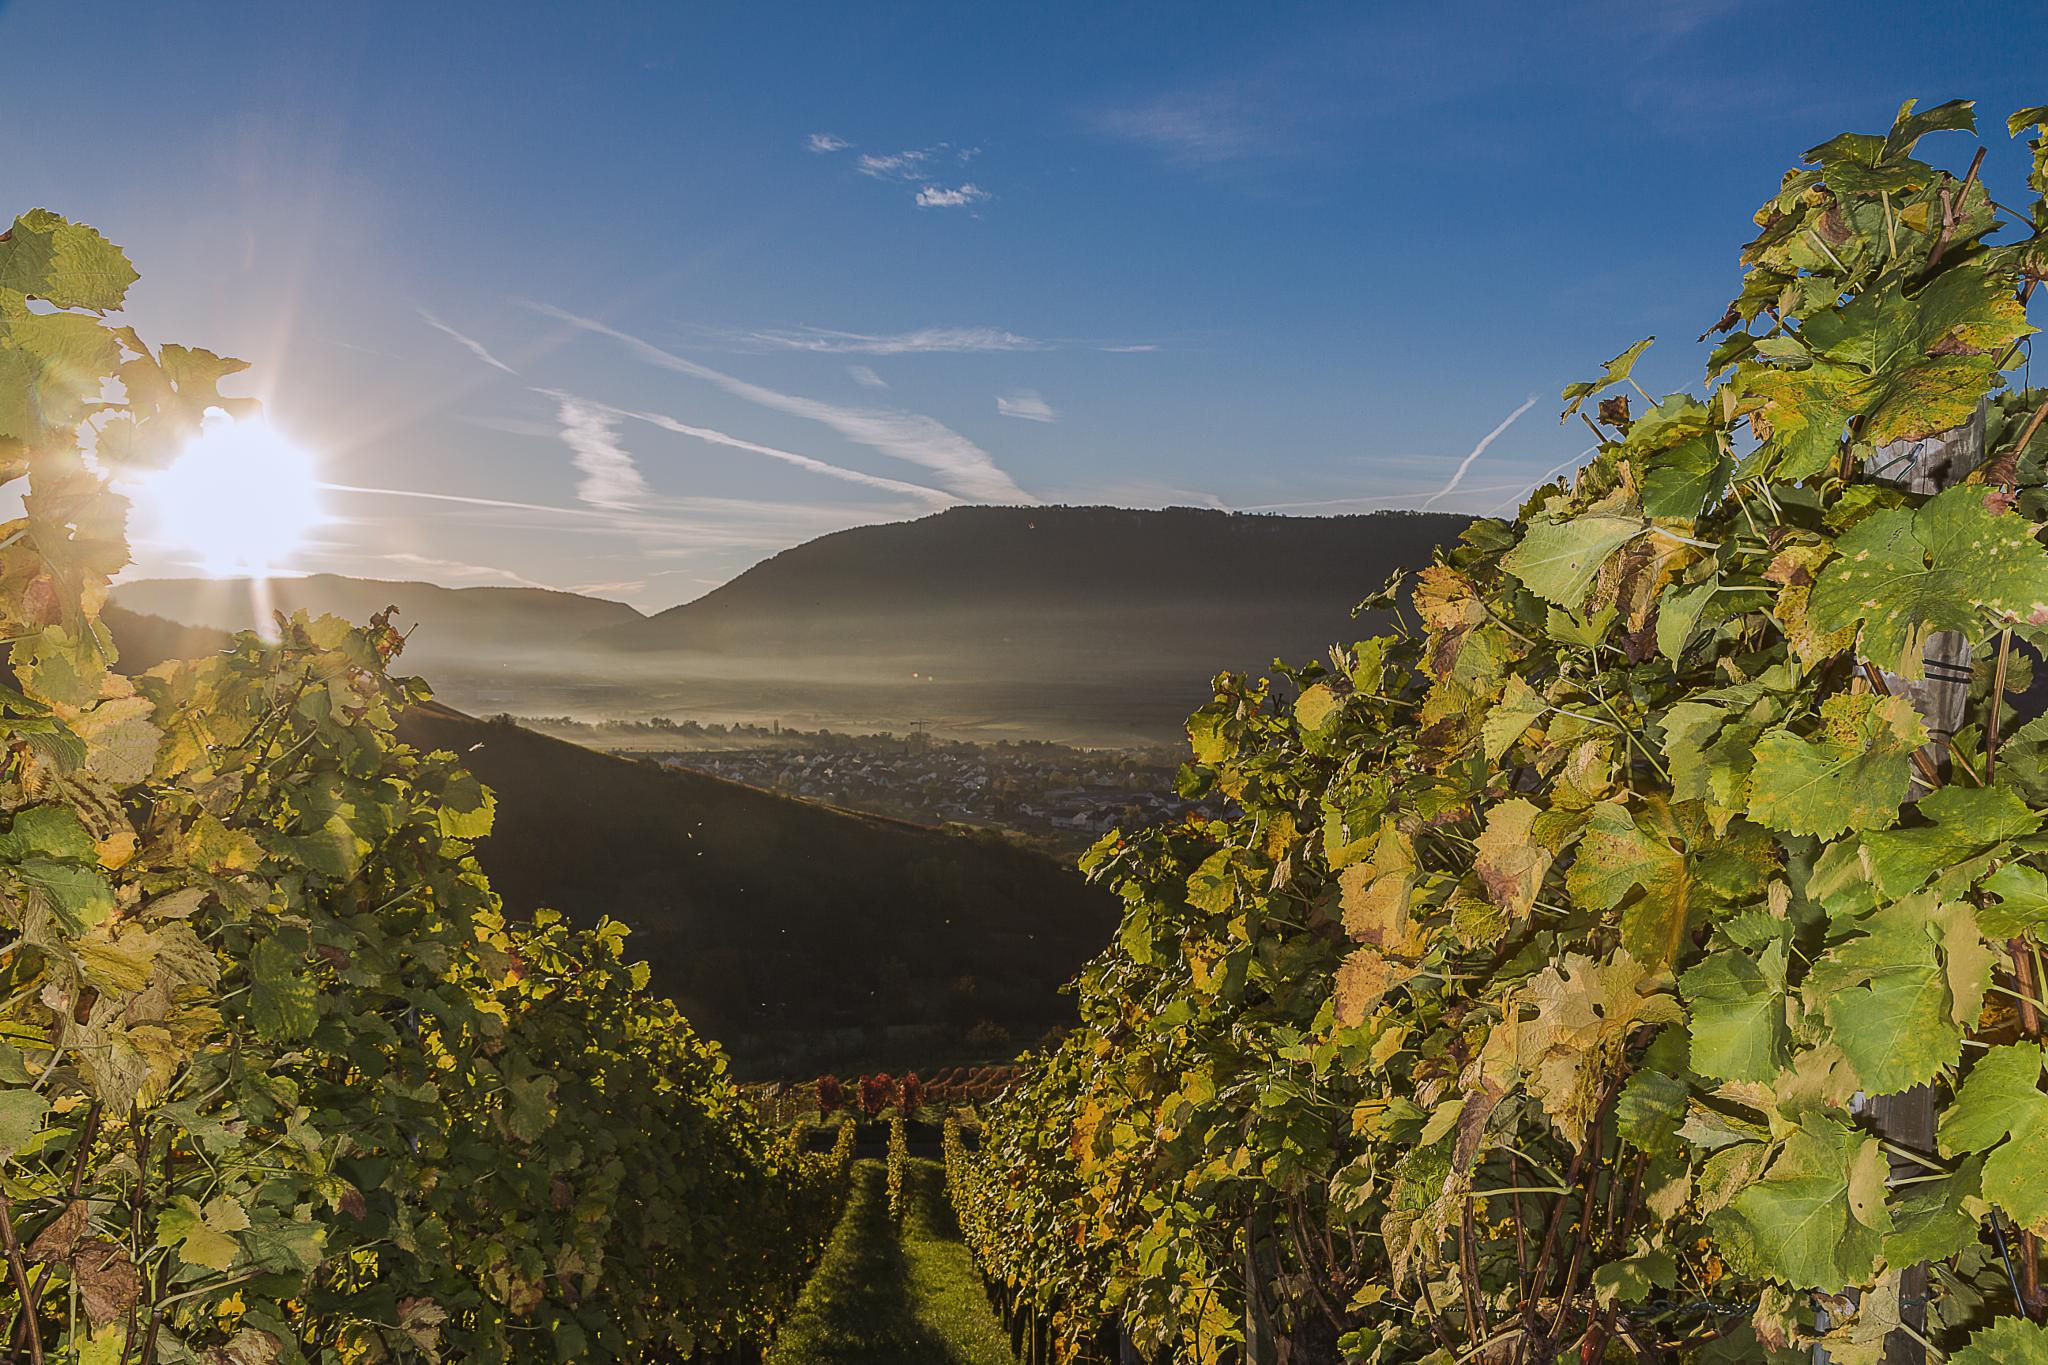 Autumn 2014 at a Vineyard by Michael Alle